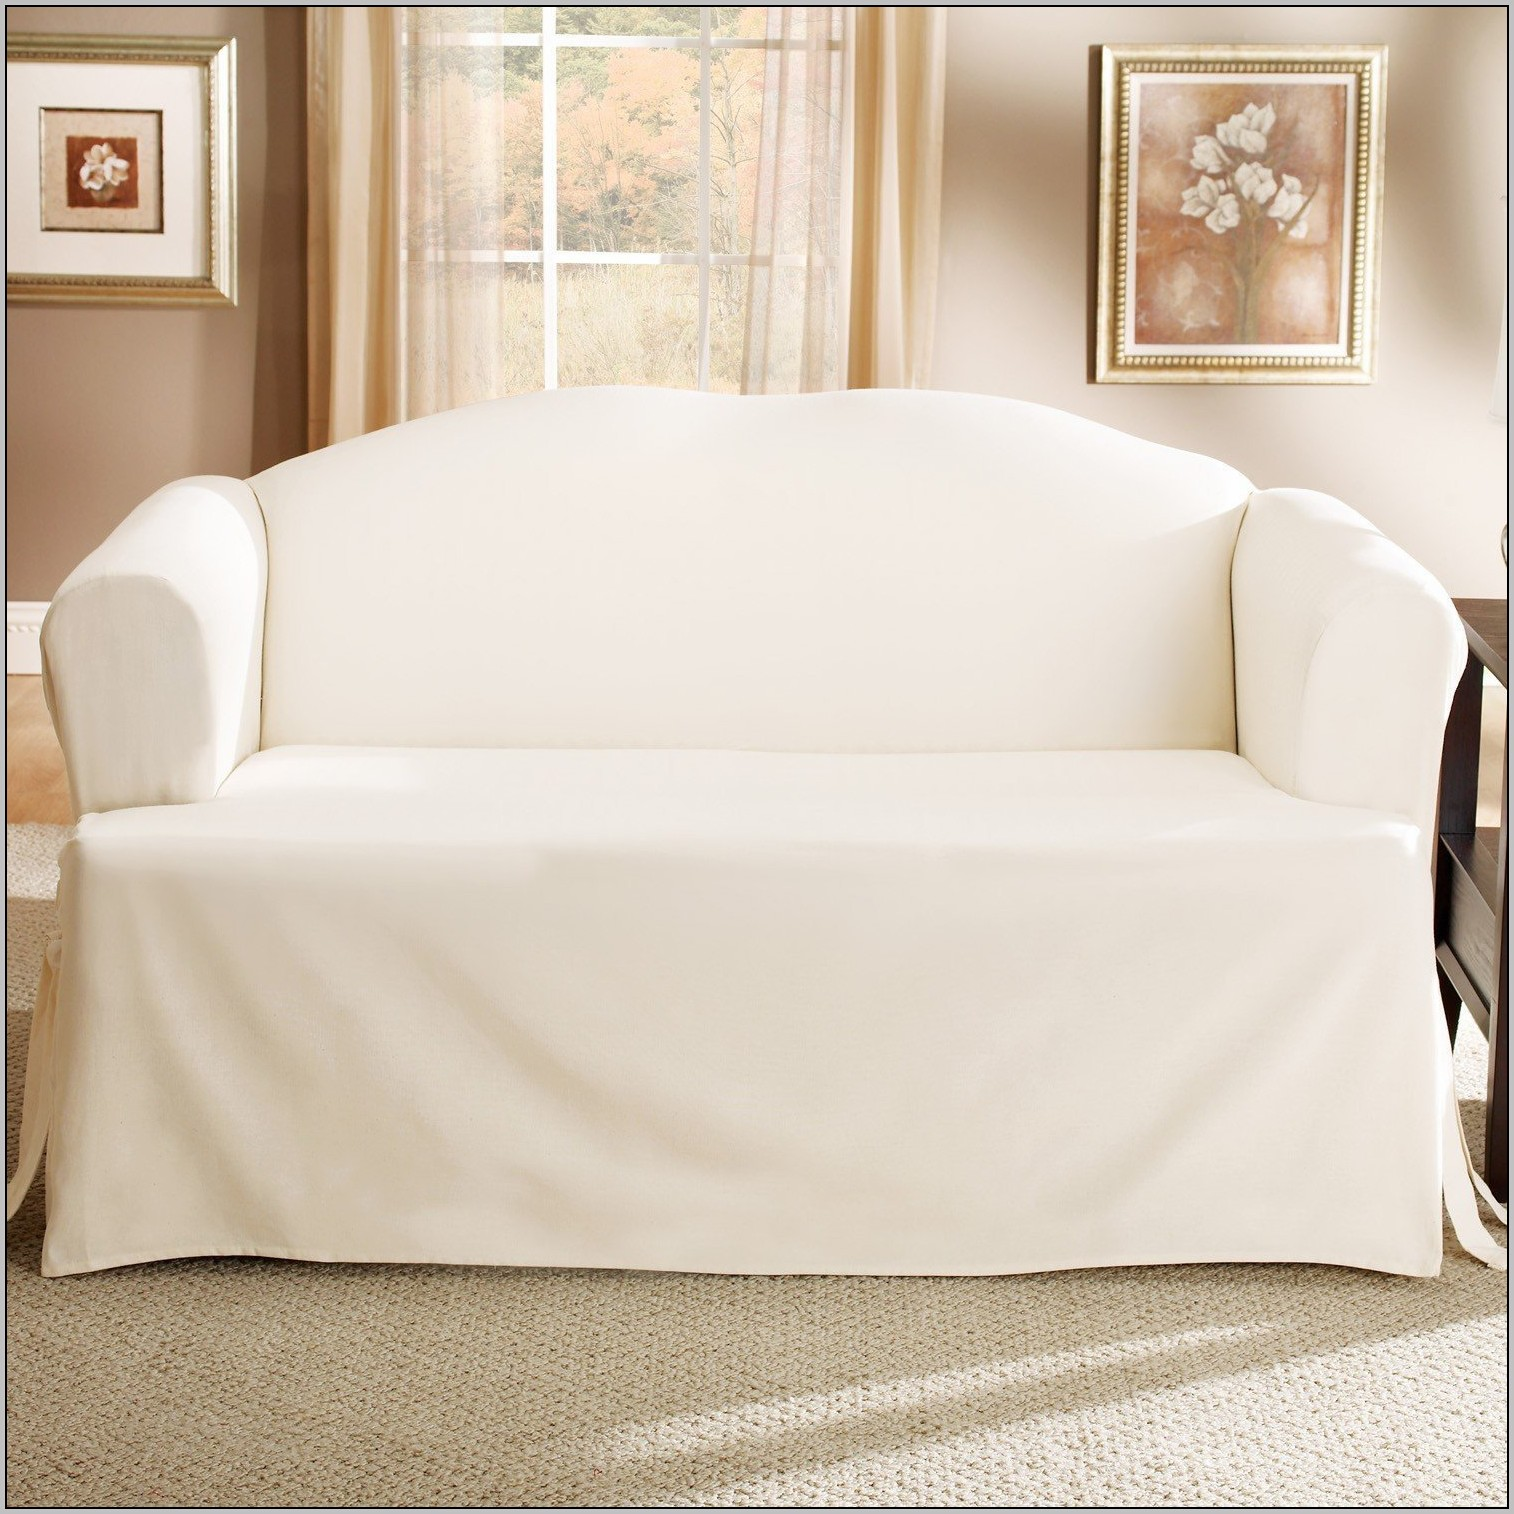 T Cushion Sofa Slipcover | Slipcovers for Loveseats with 2 Cushions | Cushions for Couches